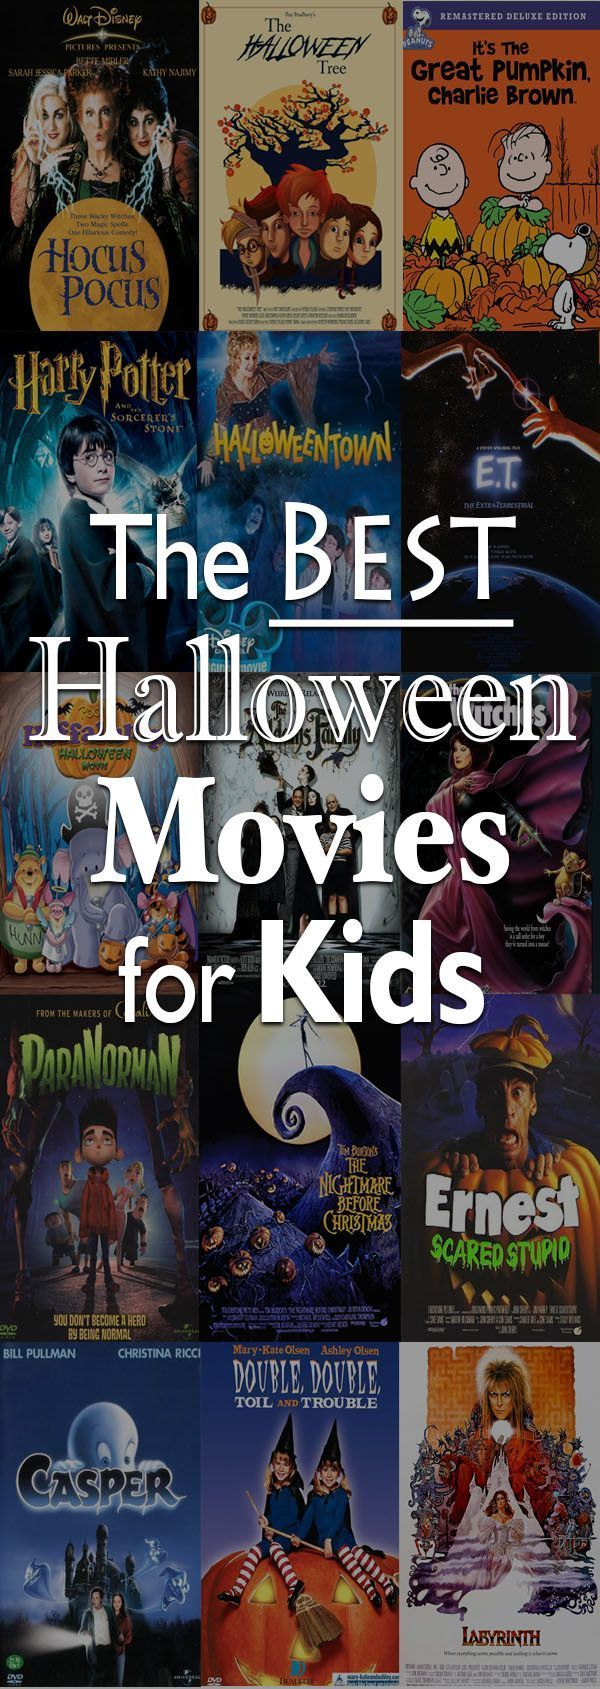 the best halloween movies for kids list of kid friendly movies for fall - Kid Friendly Halloween Movie